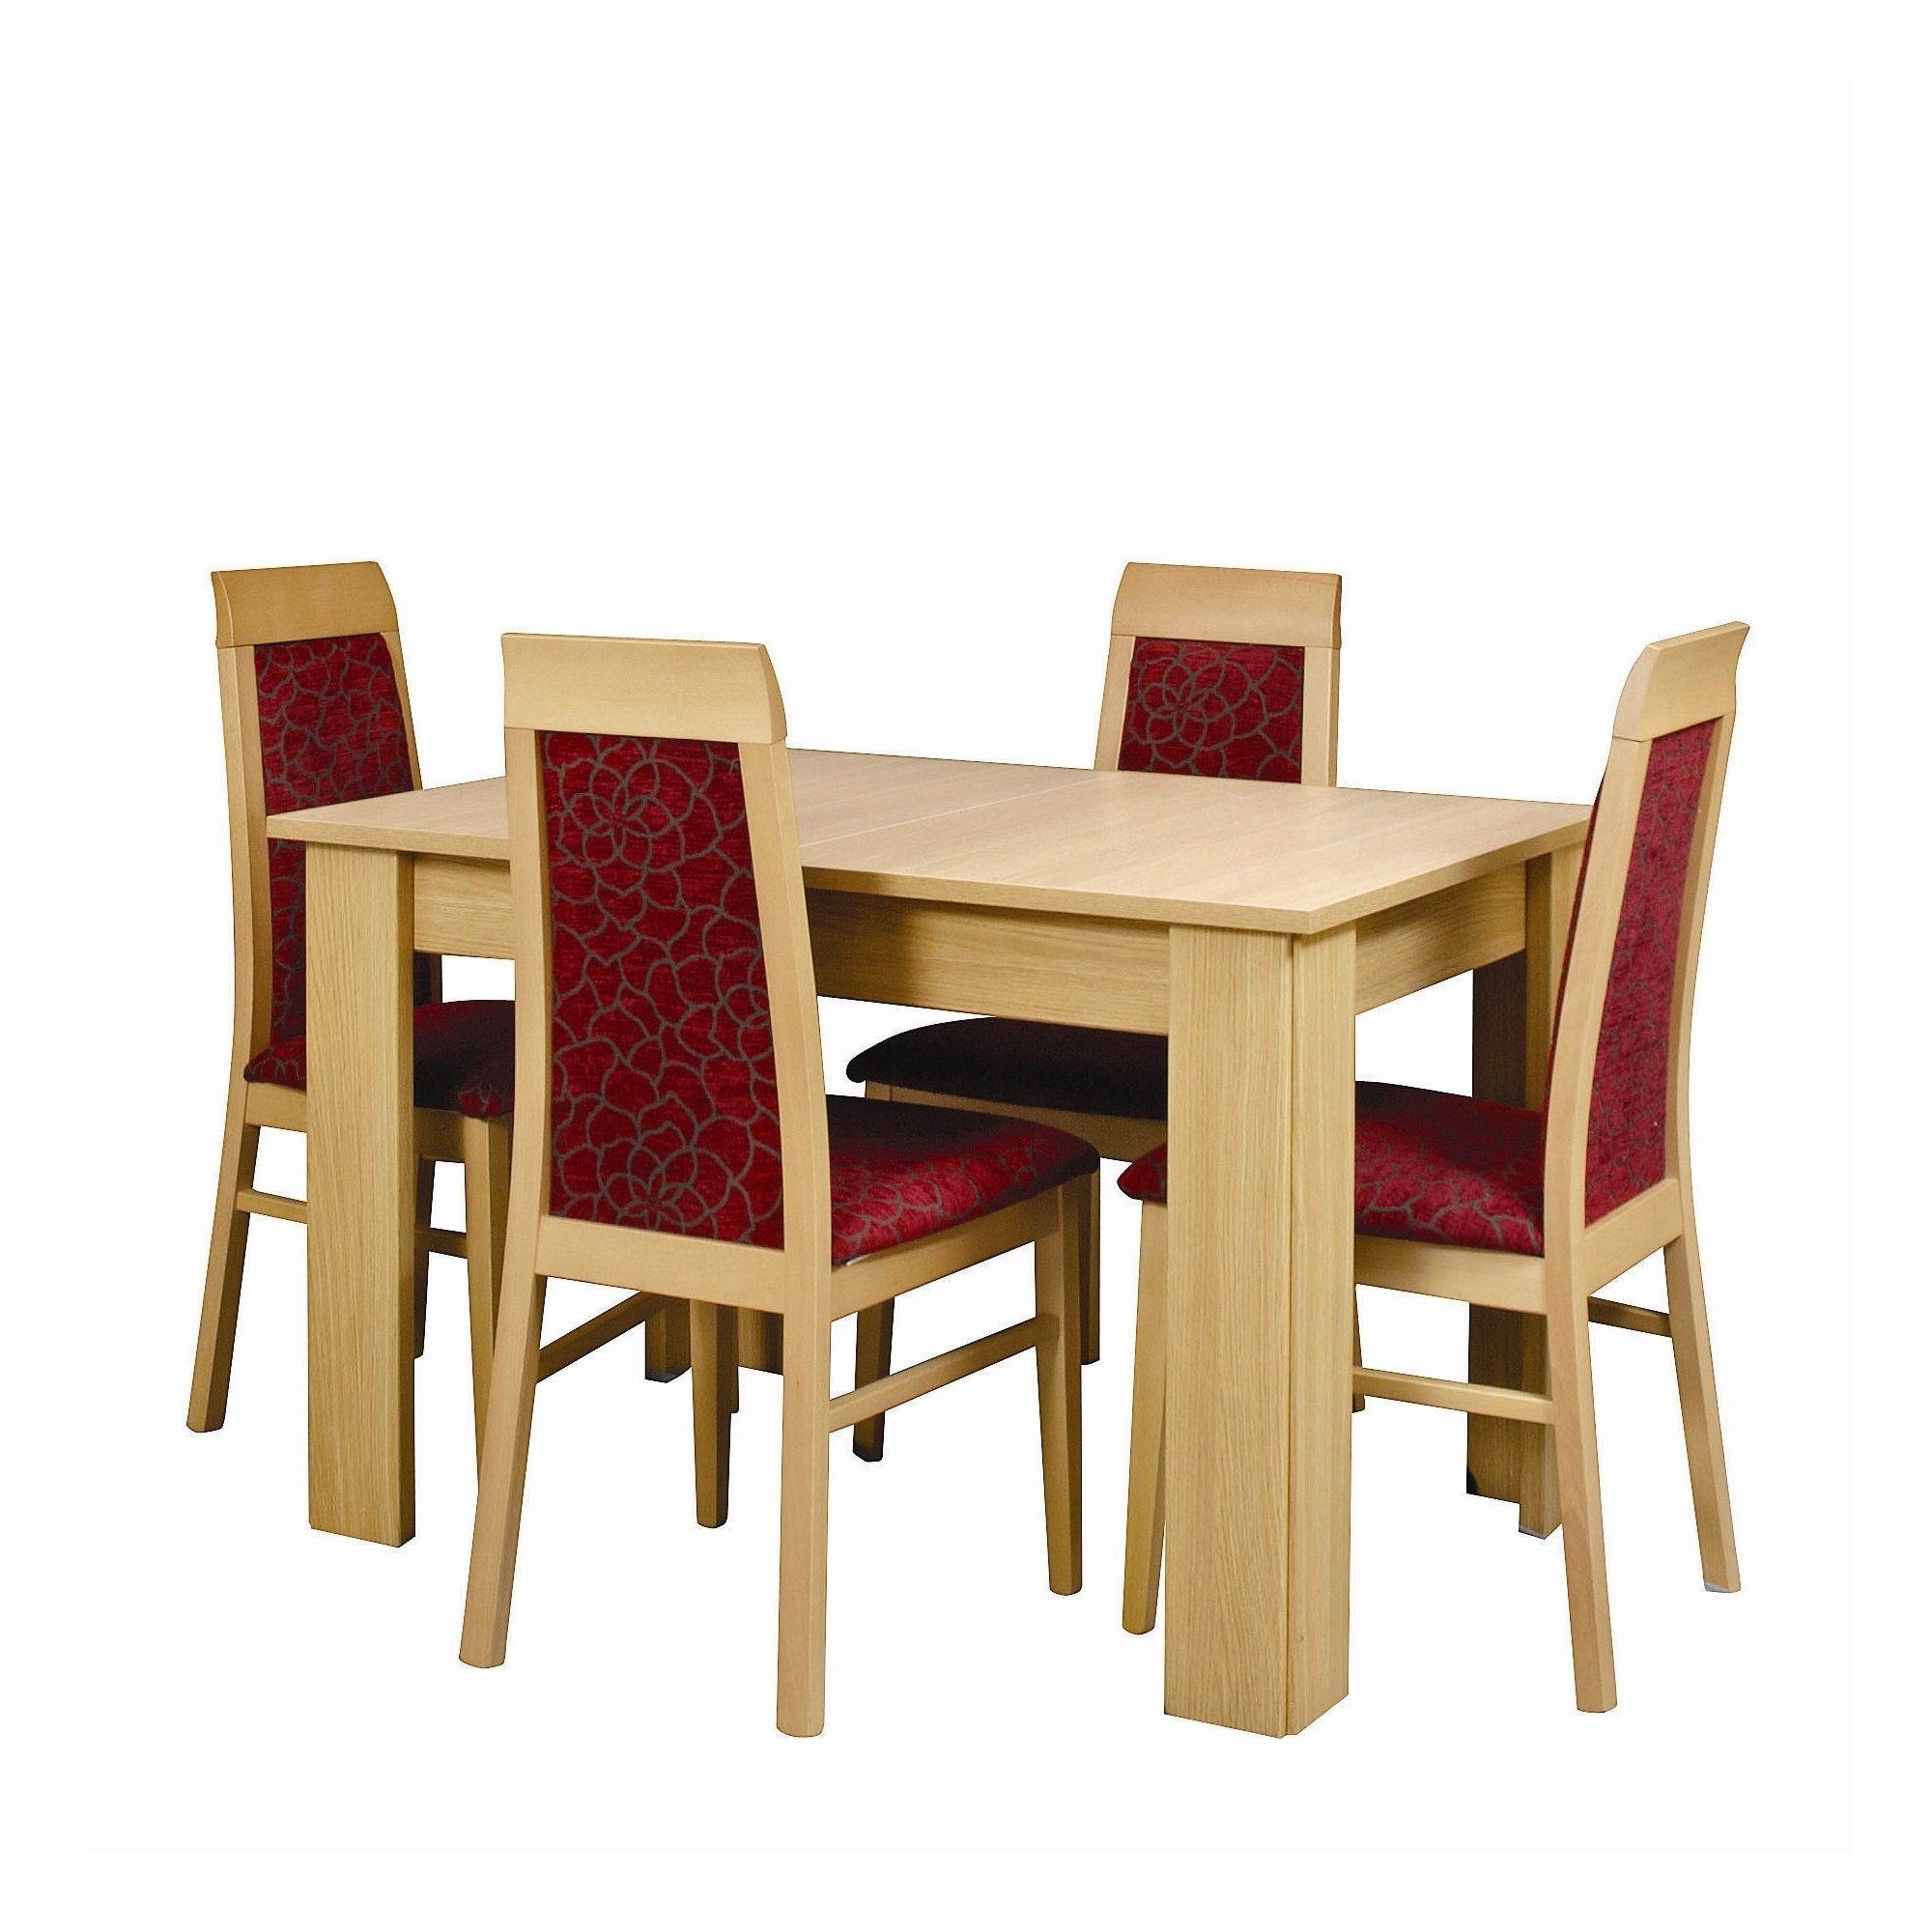 Caxton Huxley Dining Table Set with 6 Upholstered Dining Chair in Light Oak at Tesco Direct